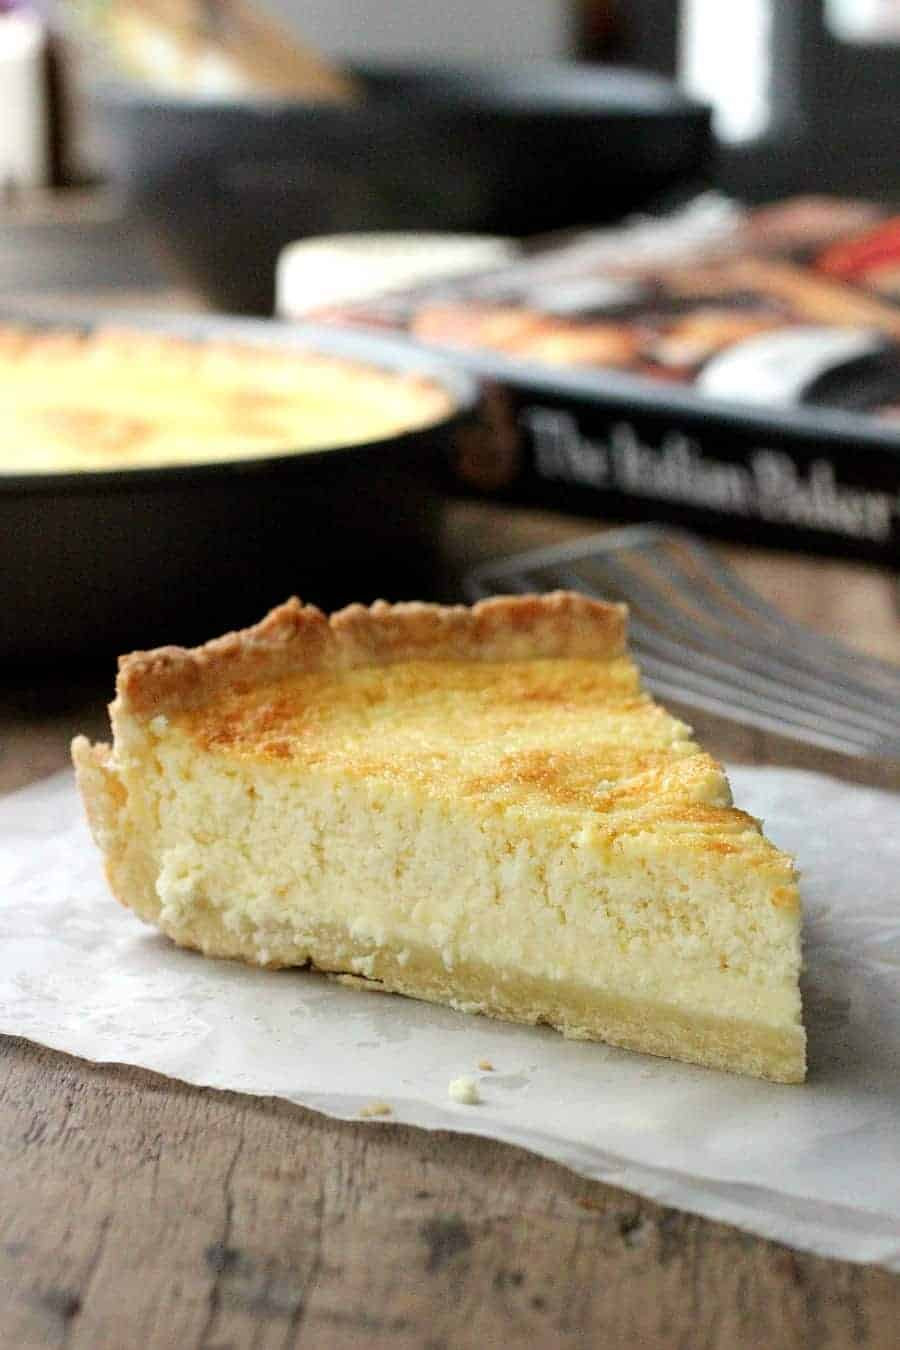 A slice of Lemon ricotta pie and a cookbook